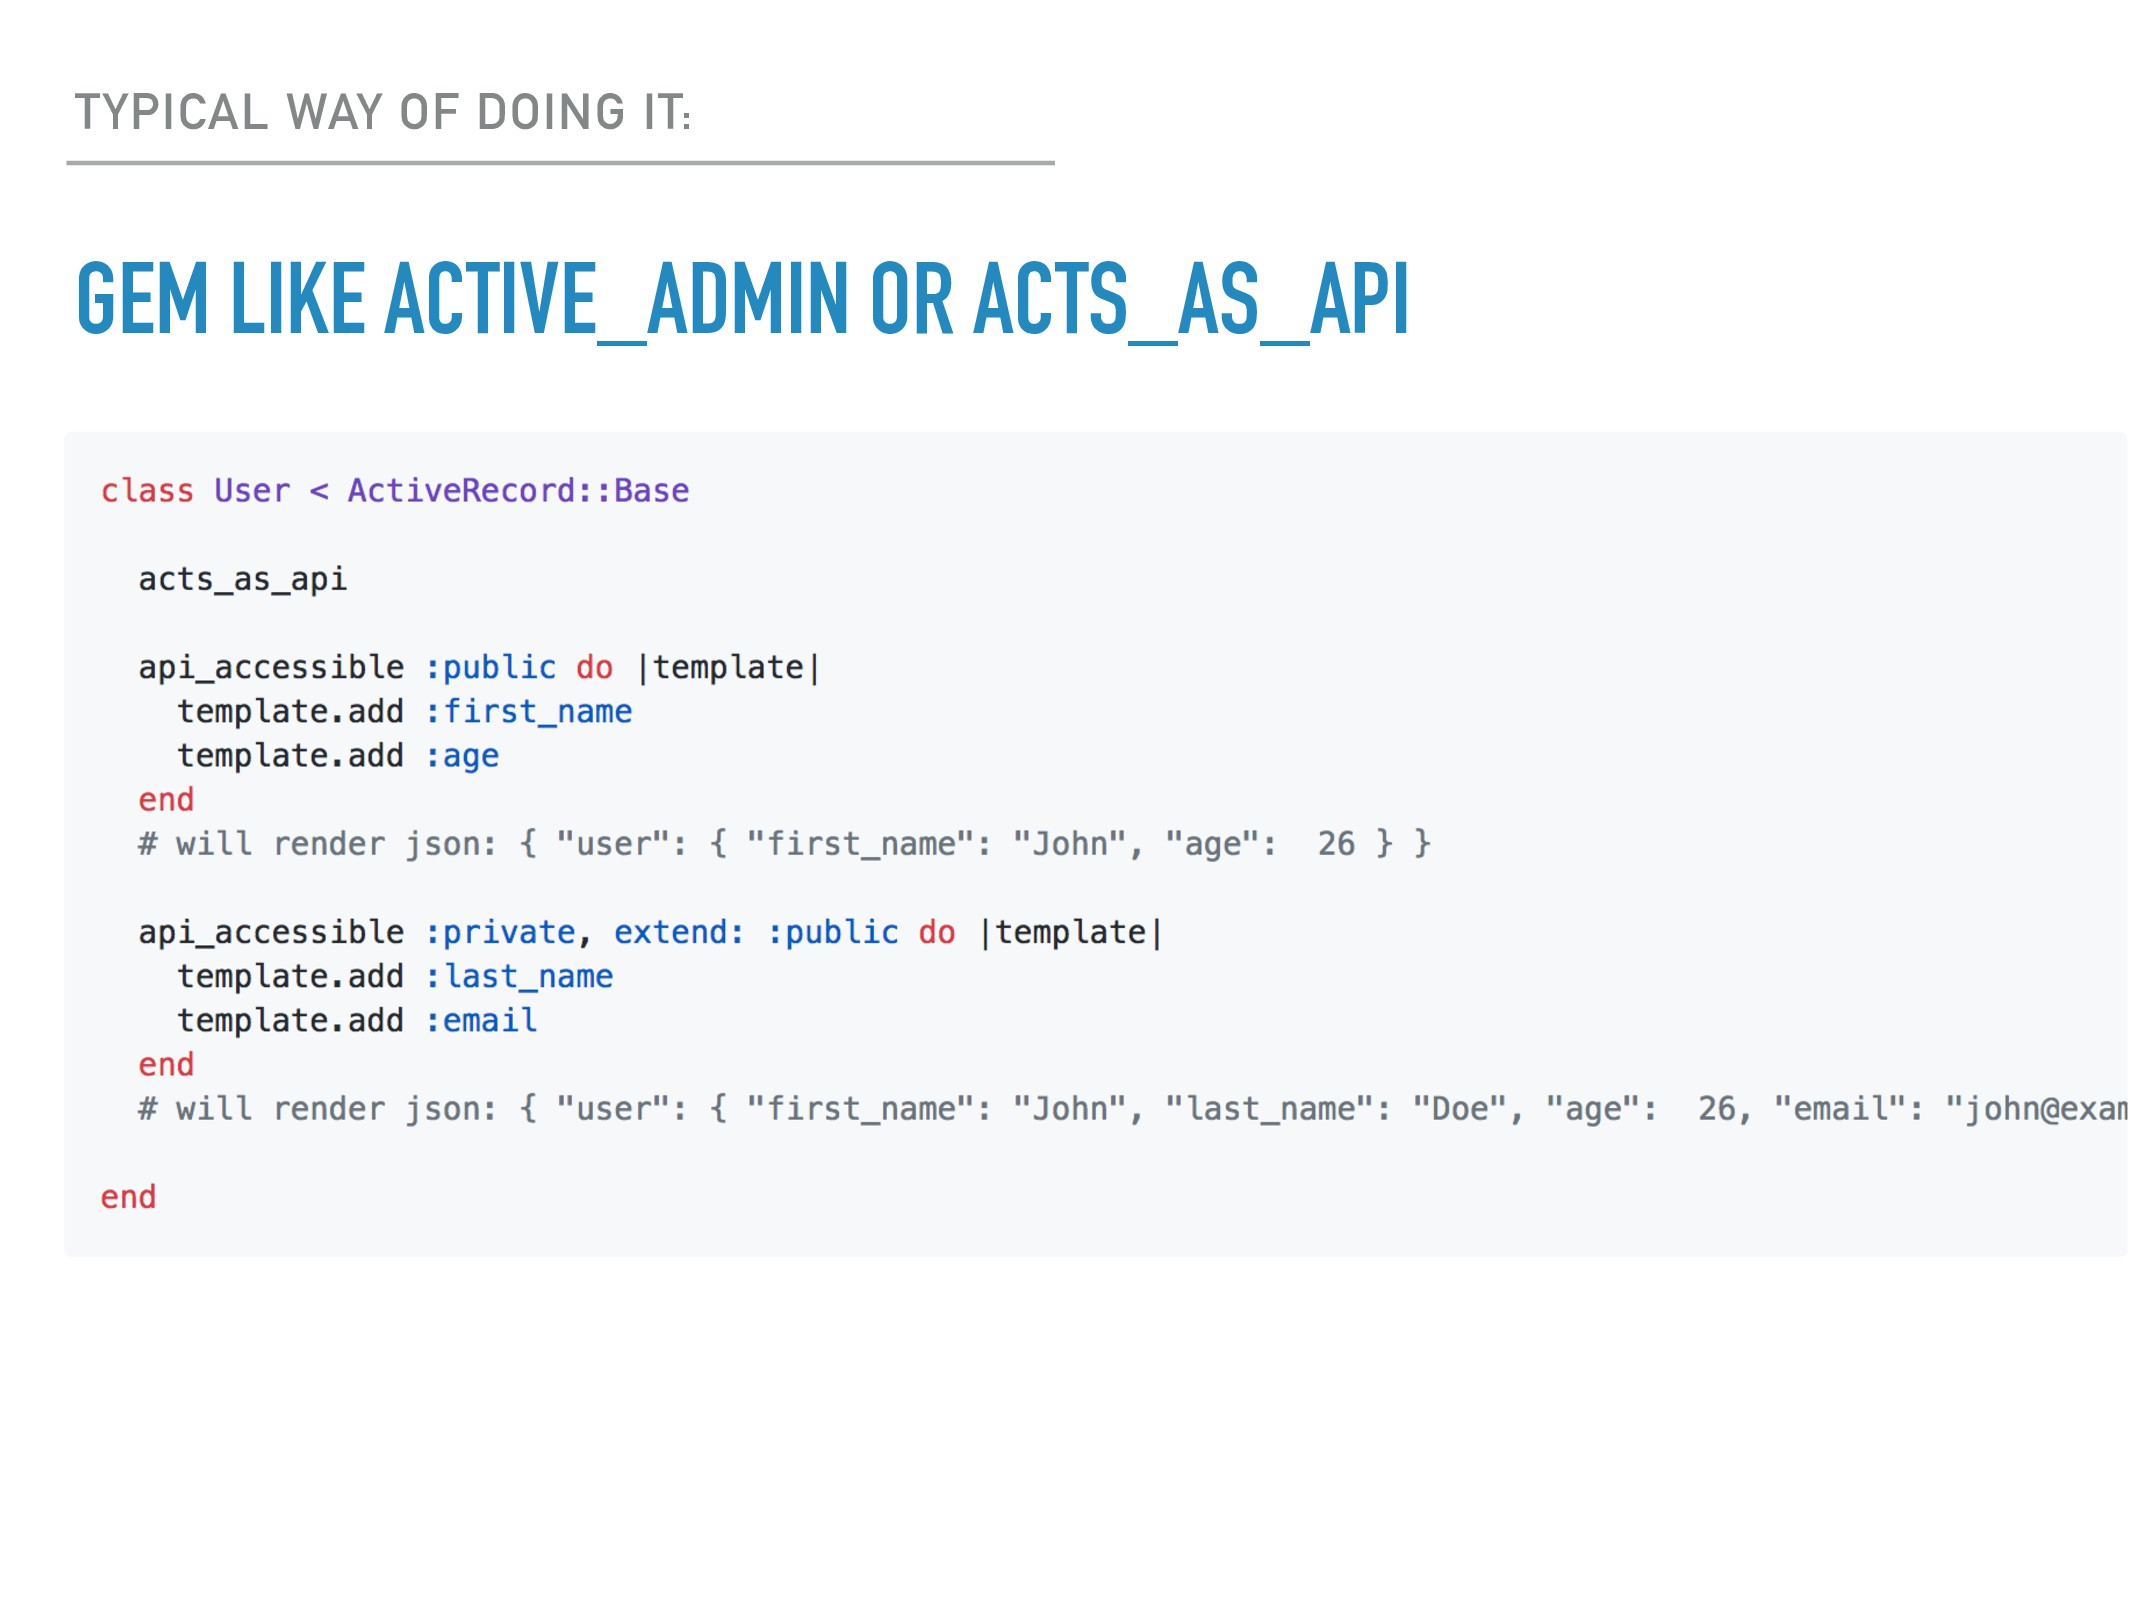 GEM LIKE ACTIVE_ADMIN OR ACTS_AS_API TYPICAL WA...